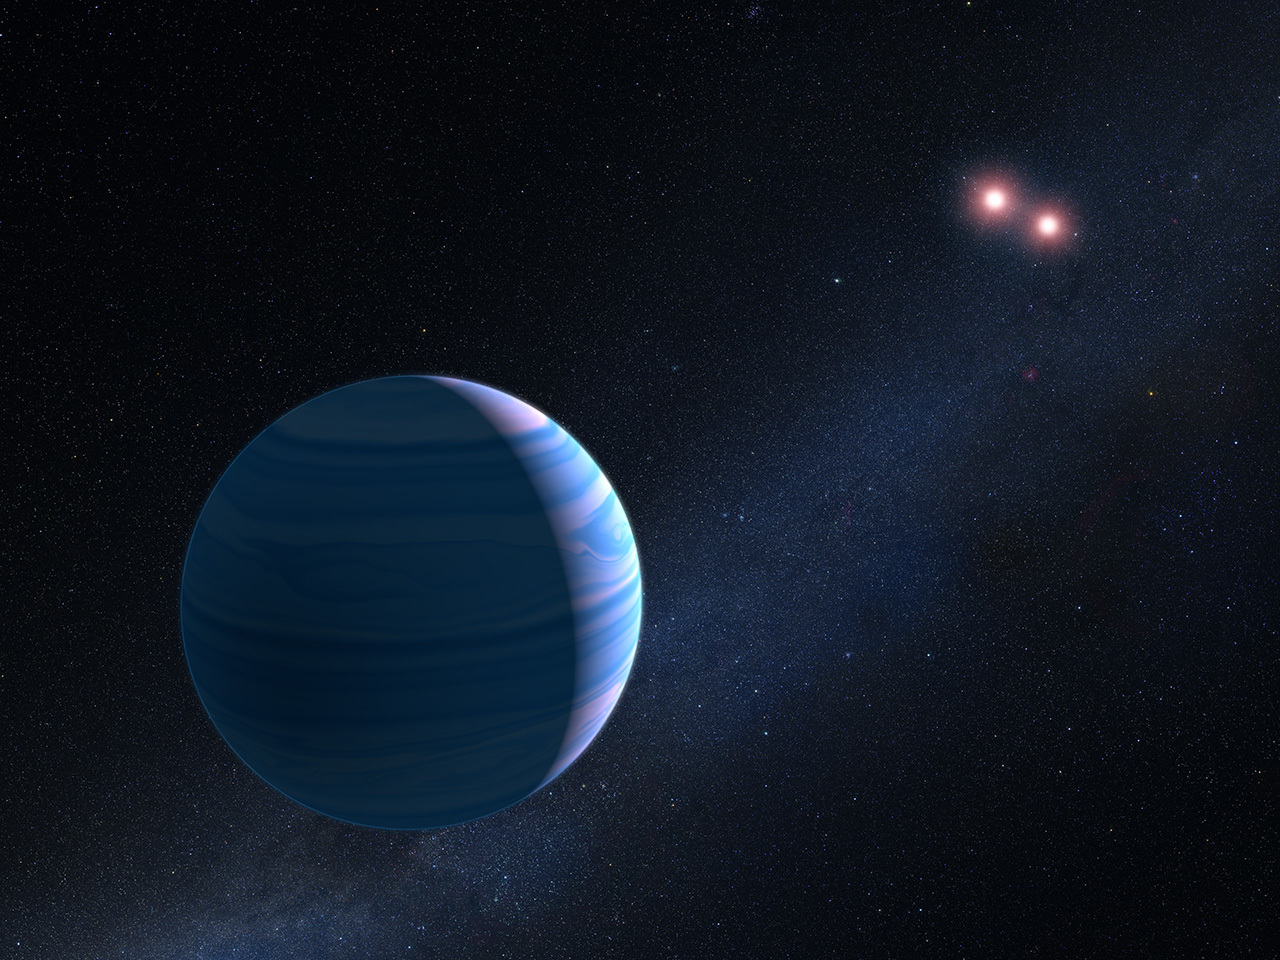 An artist's illustration shows a gas giant planet circling a pair of red dwarf stars.